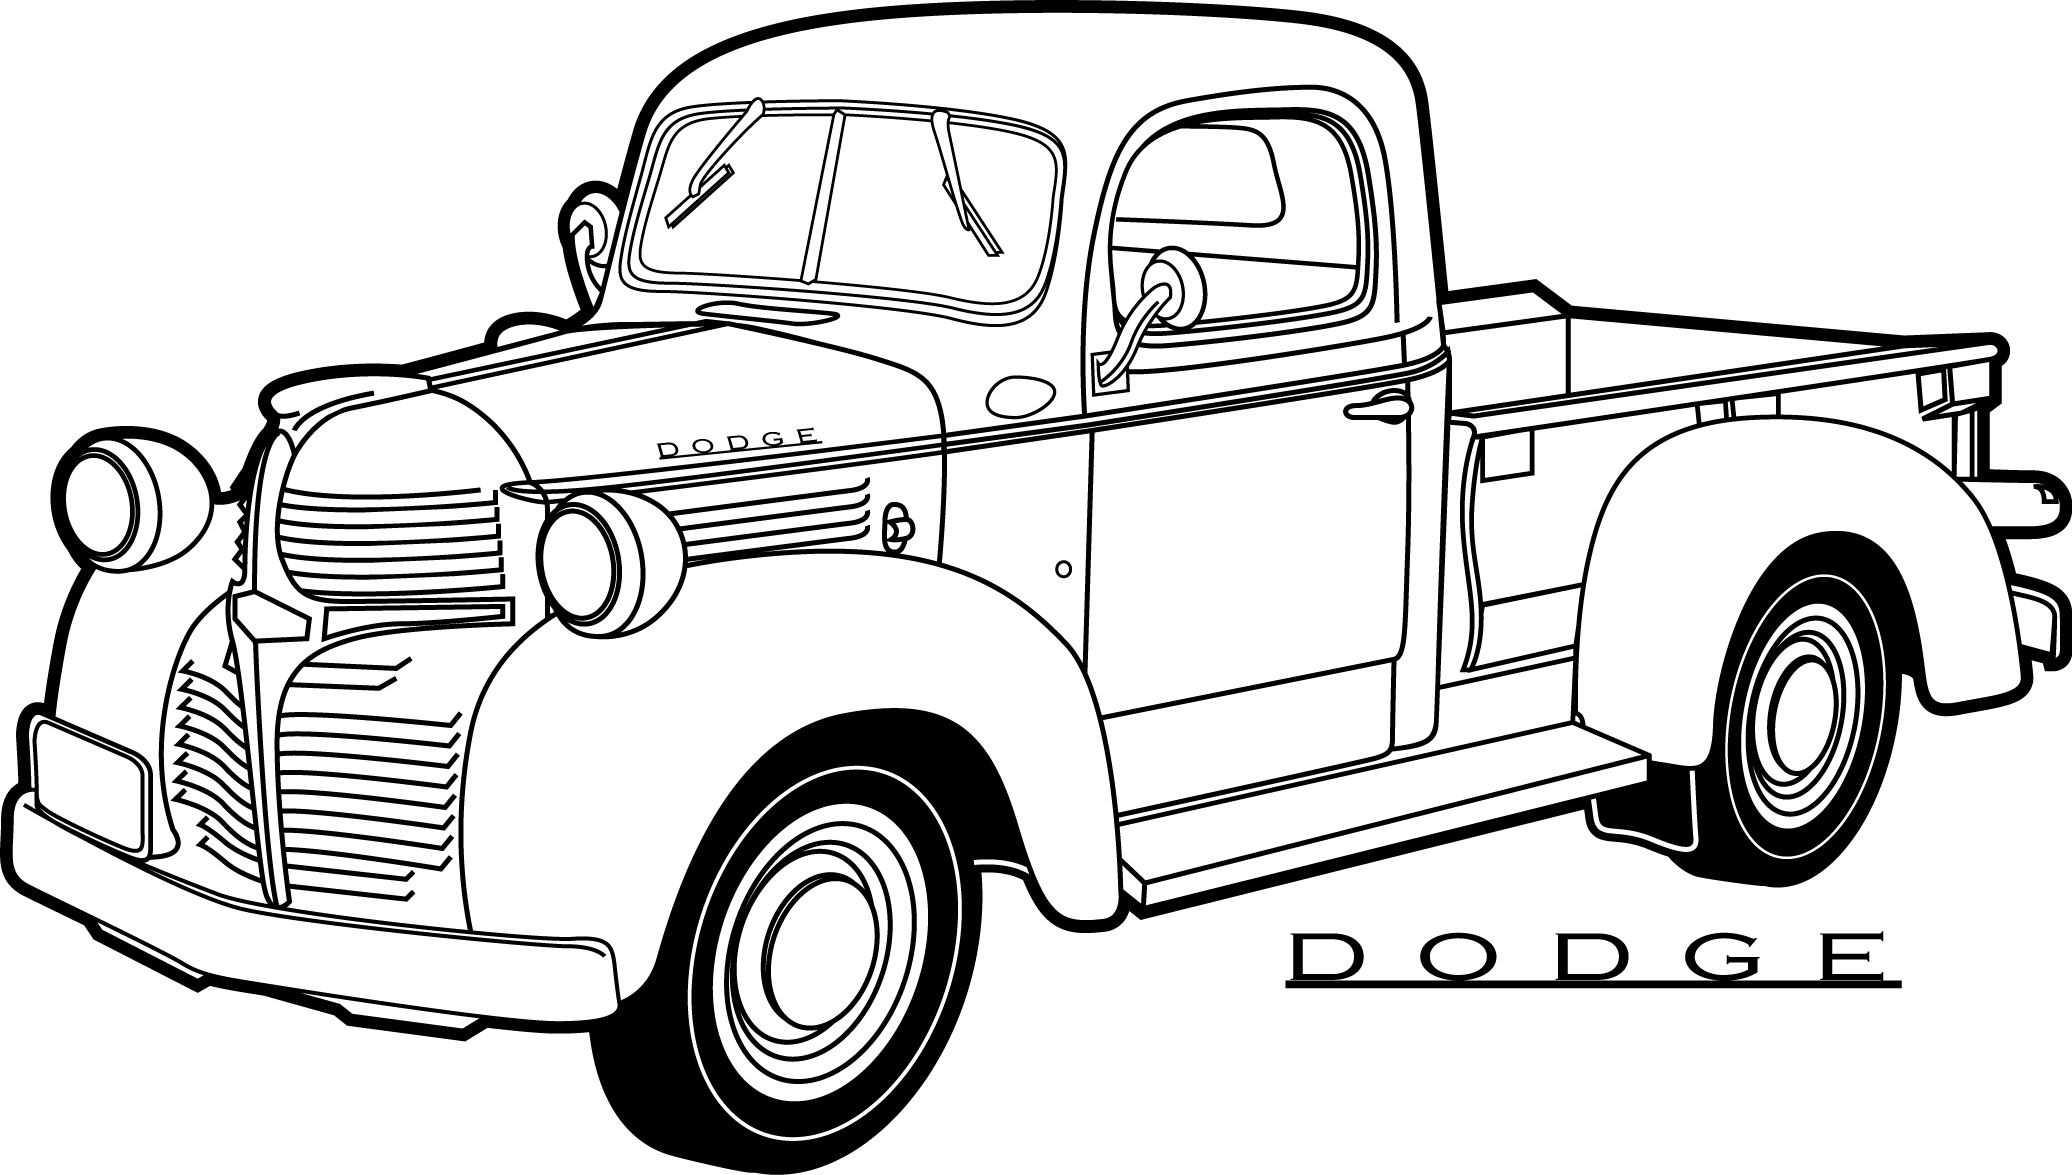 Automobile drawing at getdrawings free for personal use